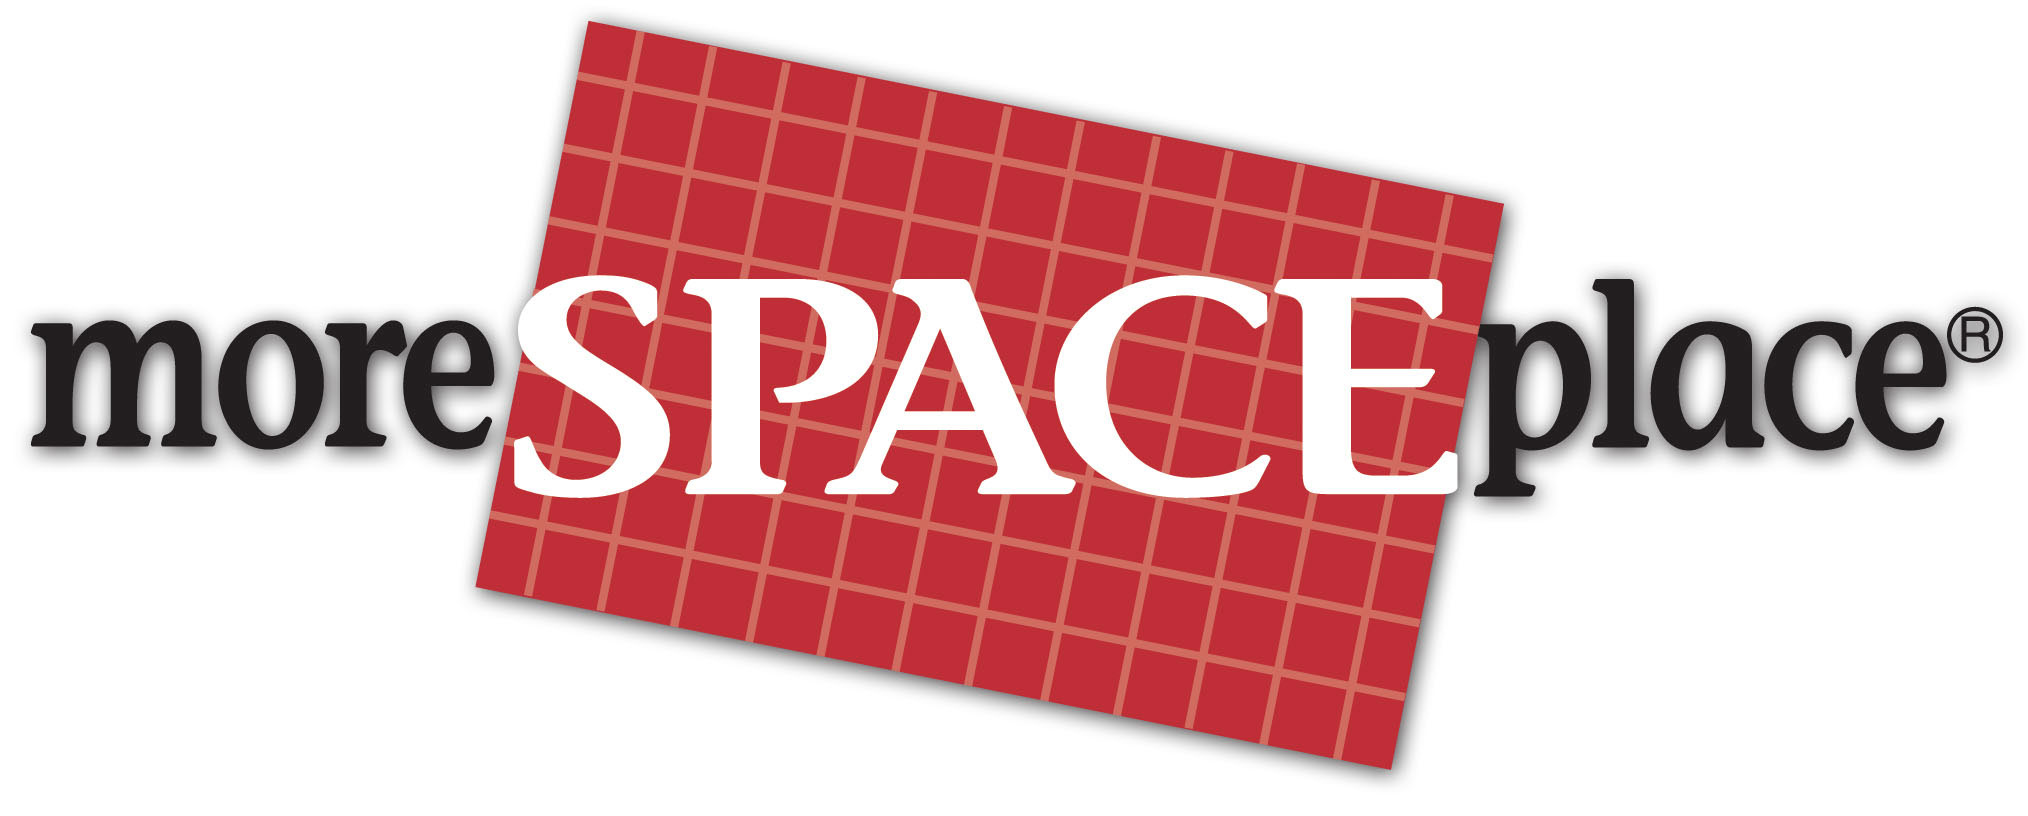 More Space Place logo